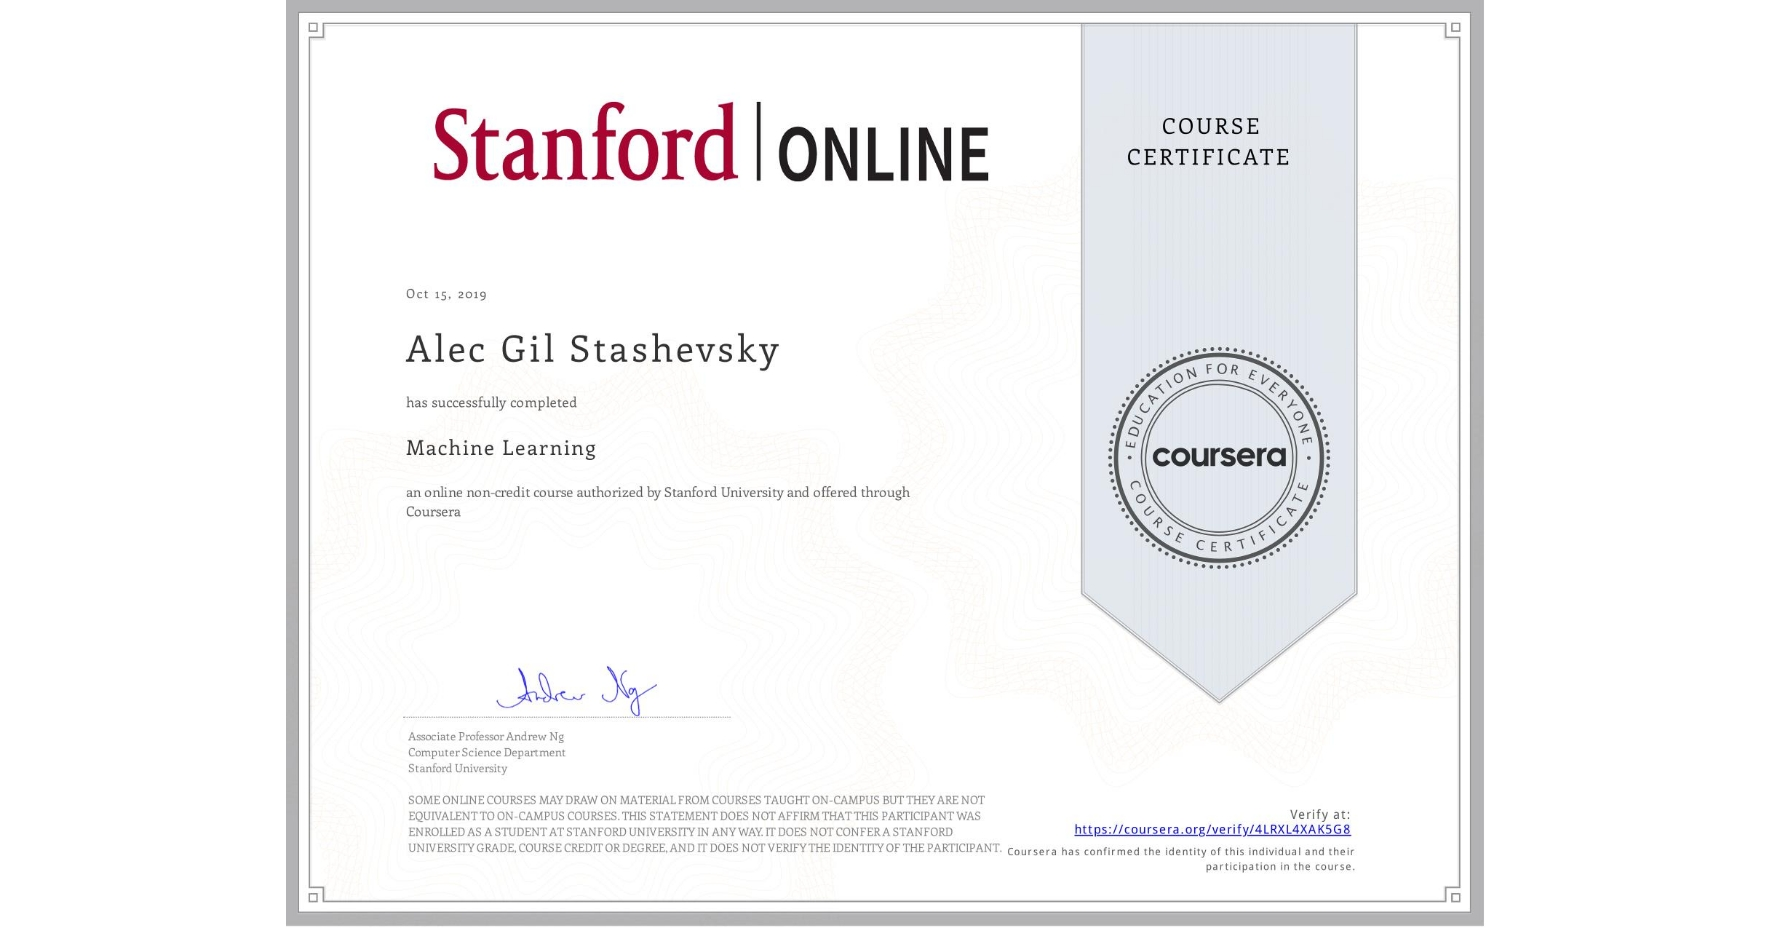 View certificate for Alec Gil Stashevsky, Machine Learning, an online non-credit course authorized by Stanford University and offered through Coursera